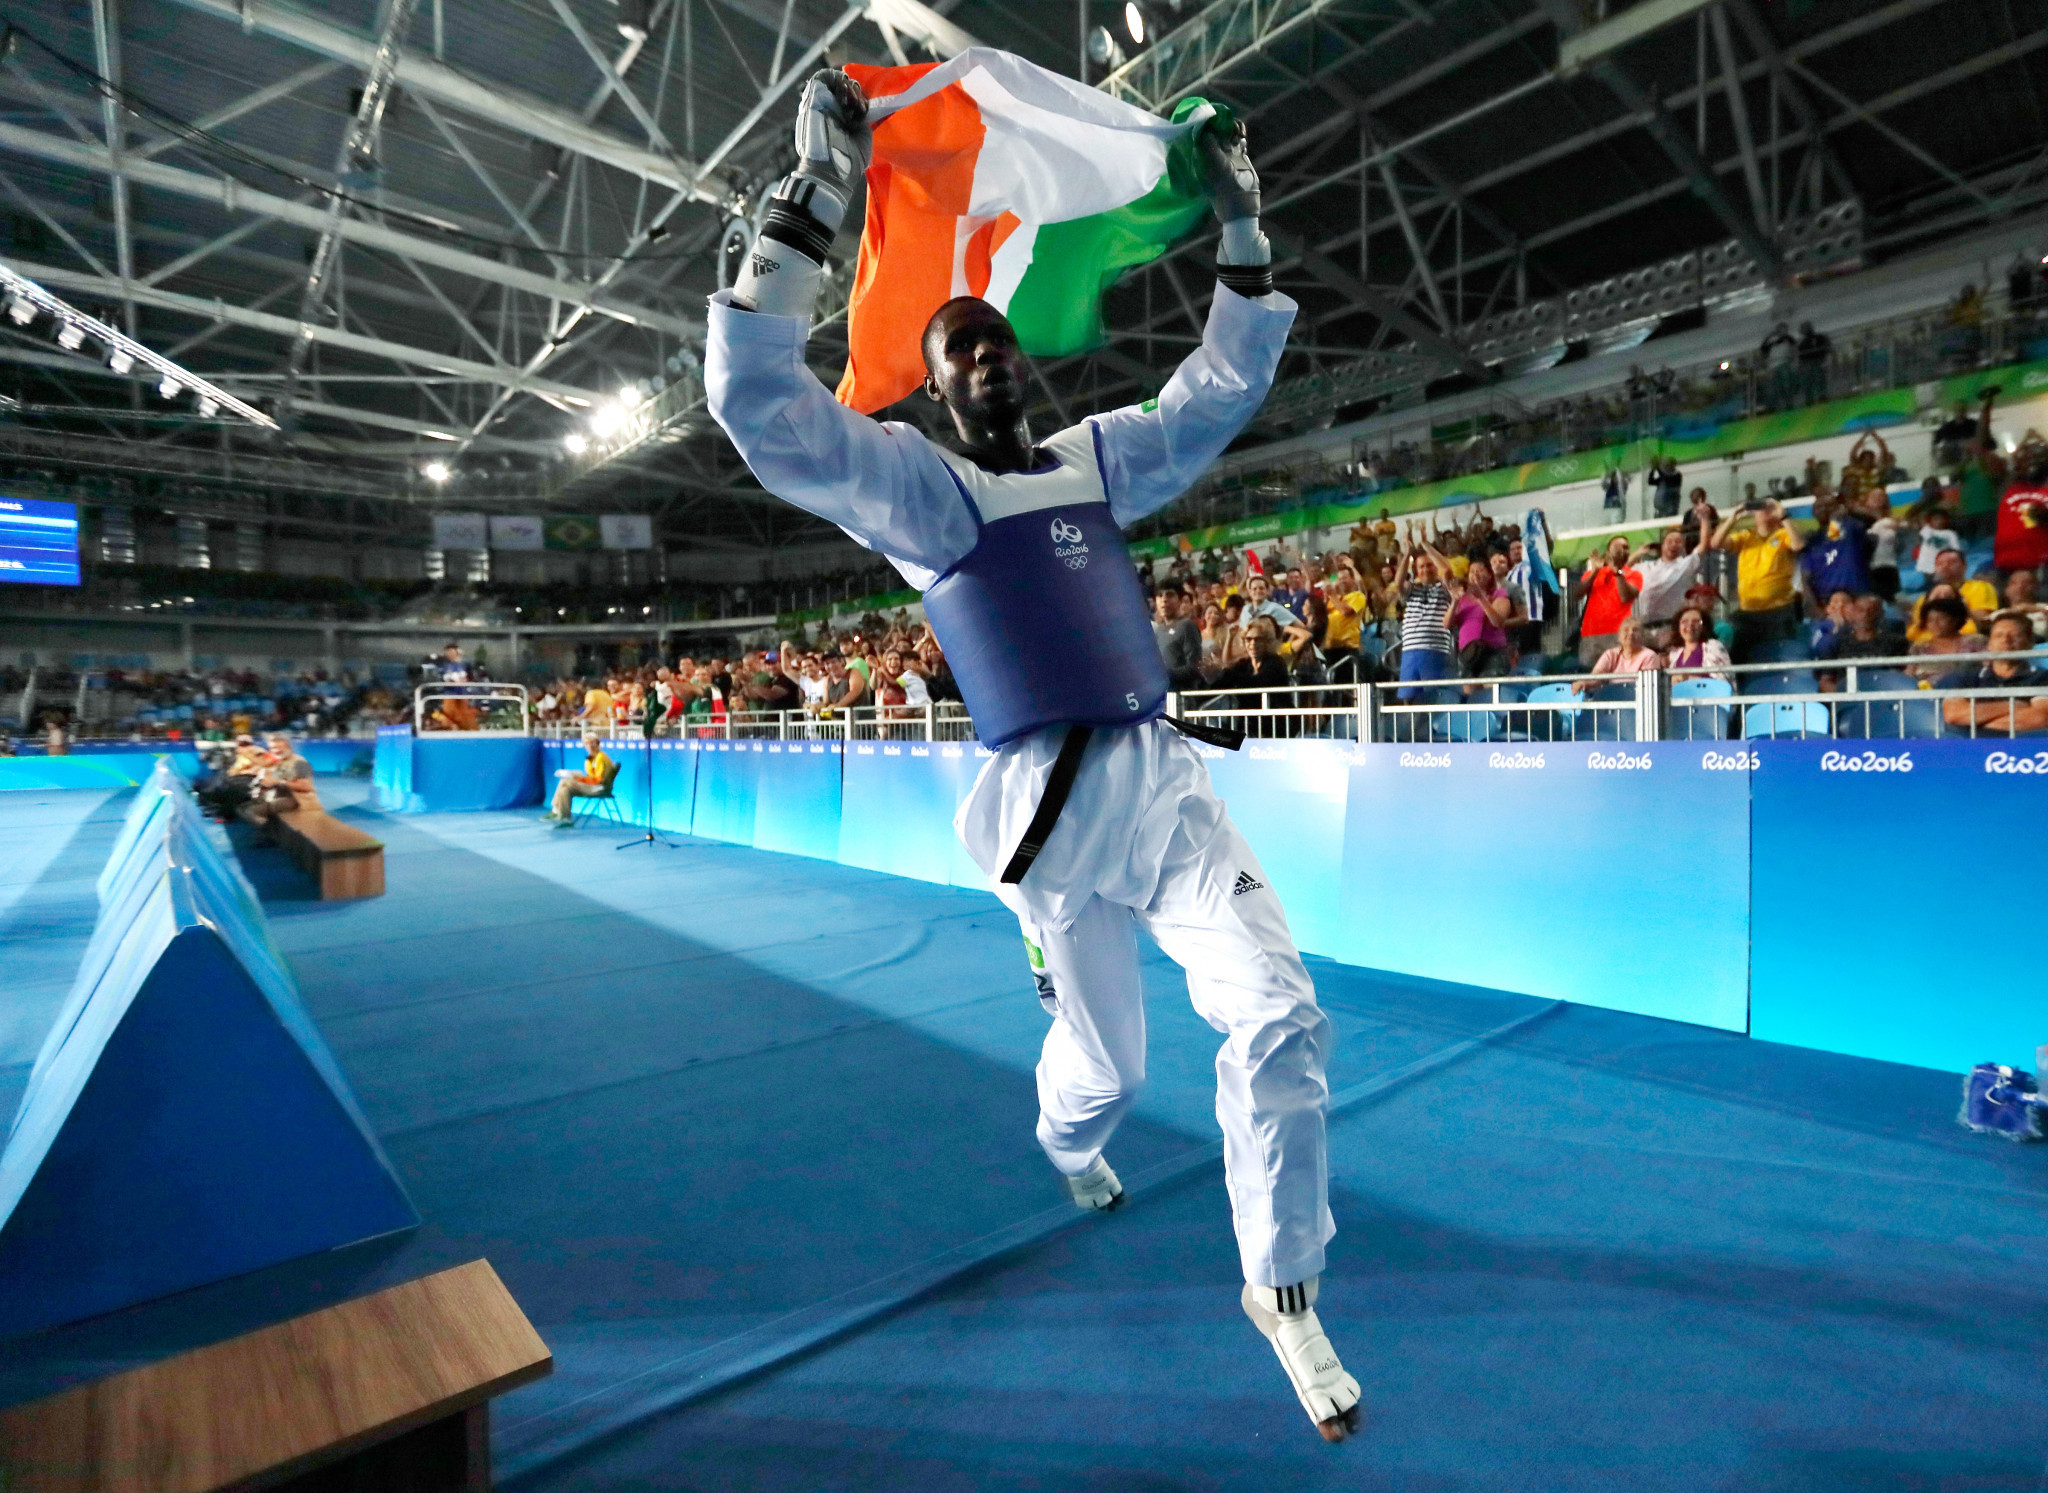 Niger's Olympic silver medallist Abdoul Razak Issoufou also topped the podium in Senegal ©Getty Images